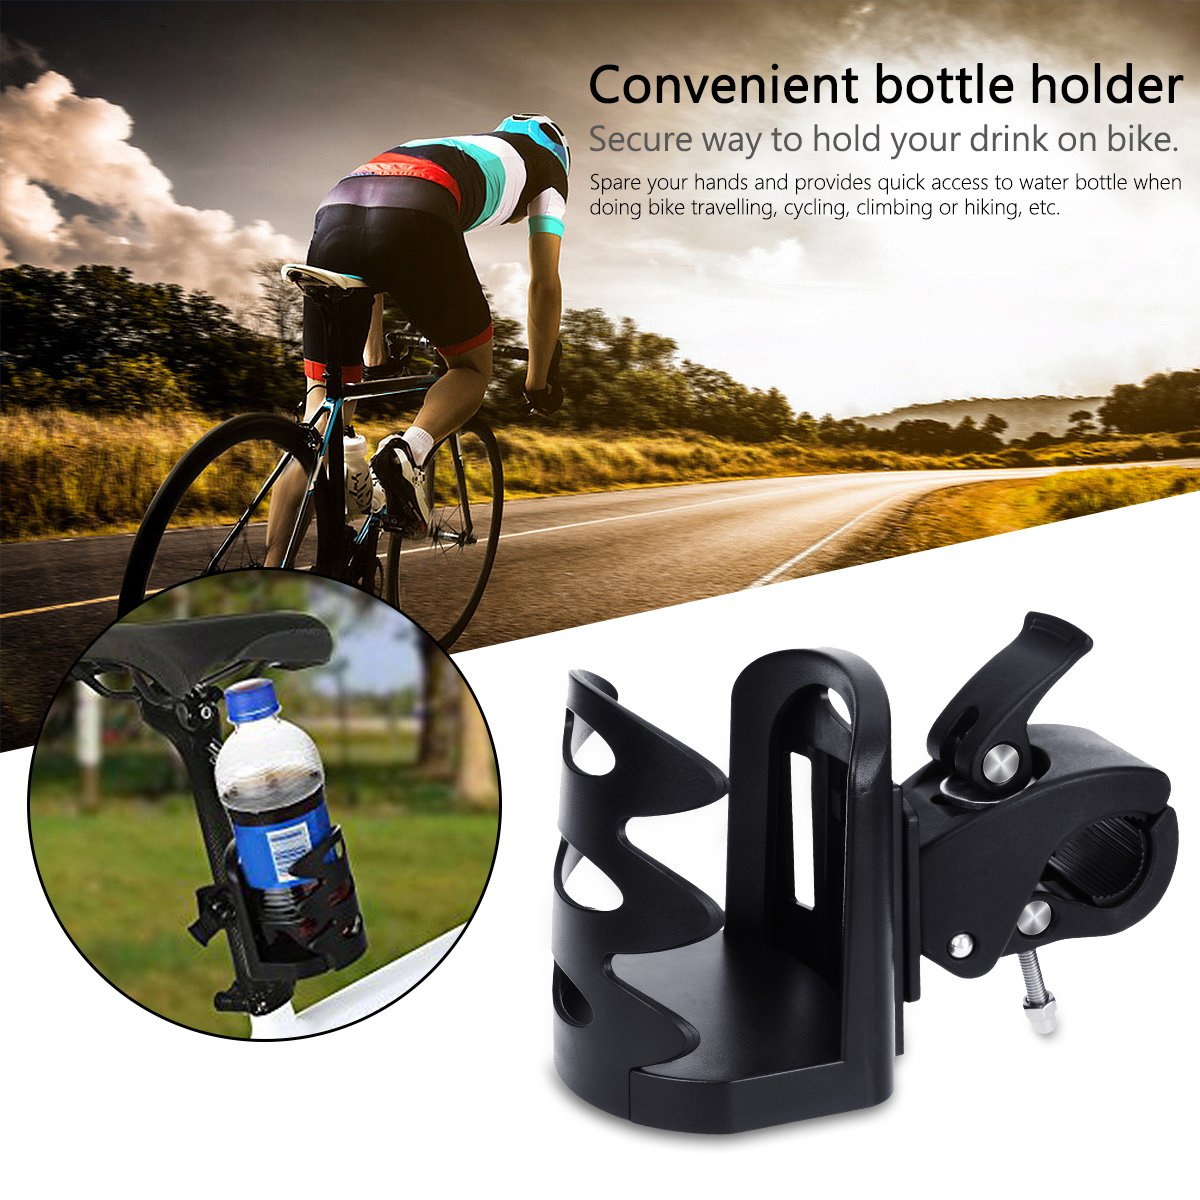 YoungRich 2 Pieces Bike Cup Holder Universal Cup Holder Storage Rack for Baby Stroller Wheelchair Pushchair Bicycle Stroller Cup Holder 360 Degree Rotation Black